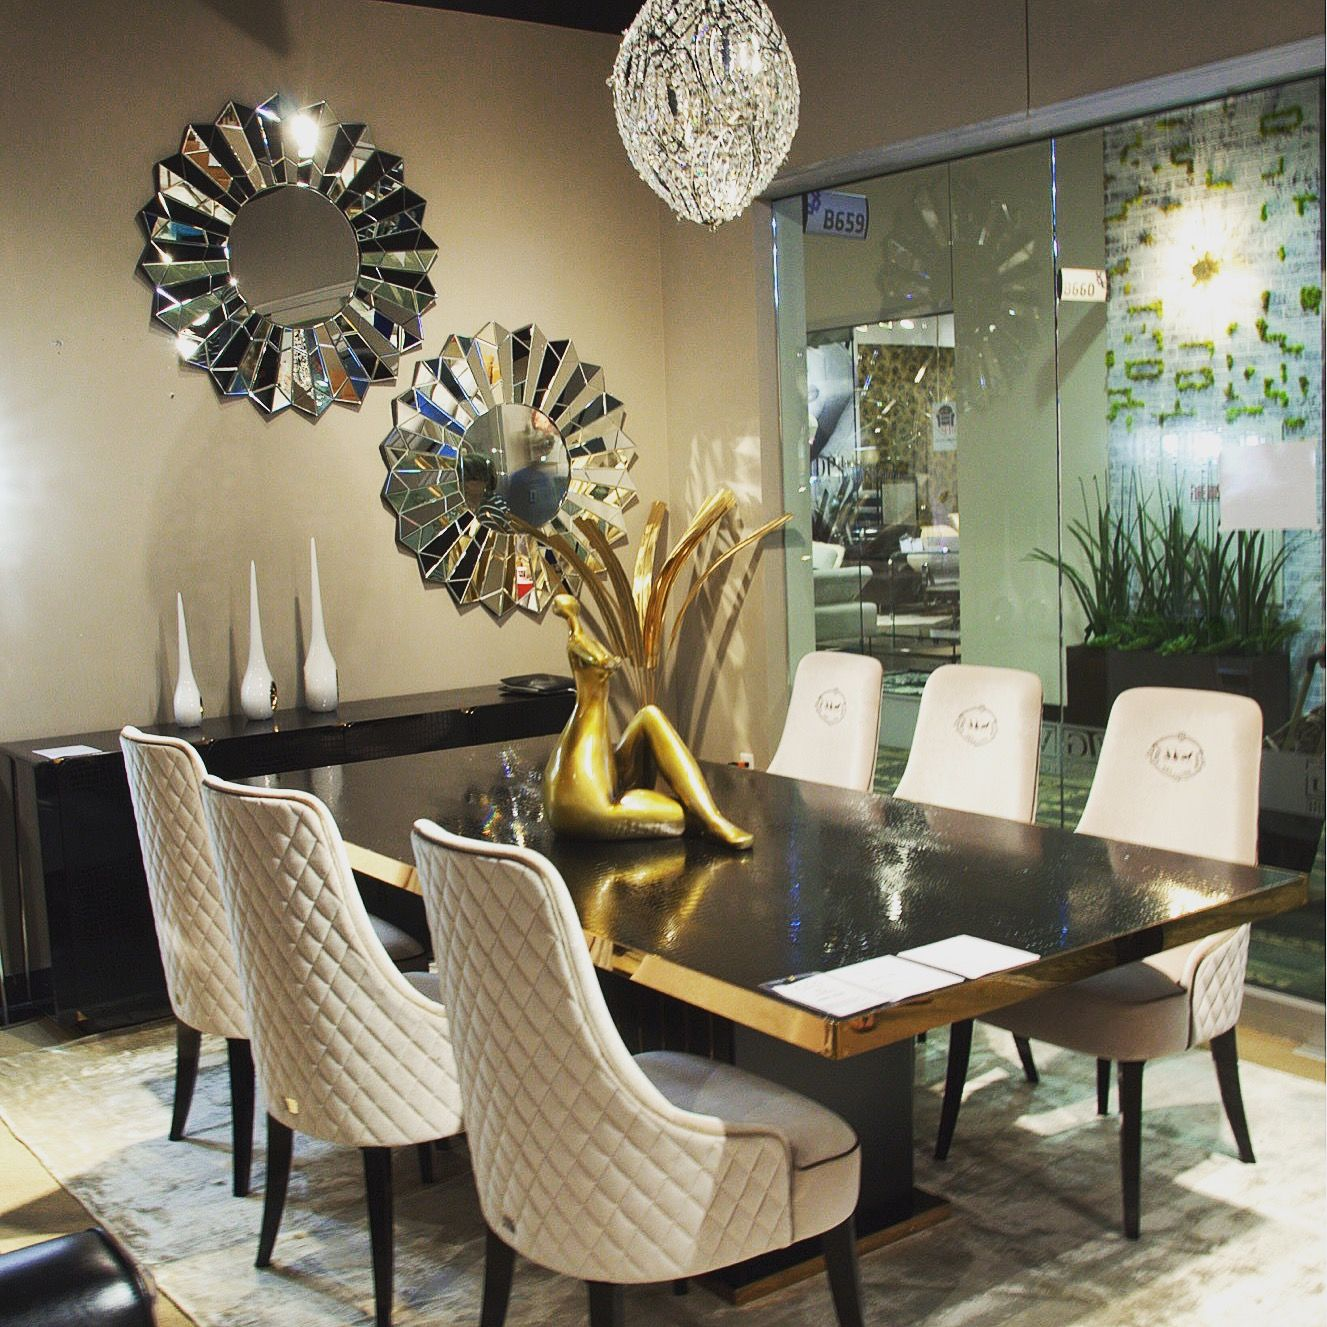 22+ Miami dining table and chairs Best Choice